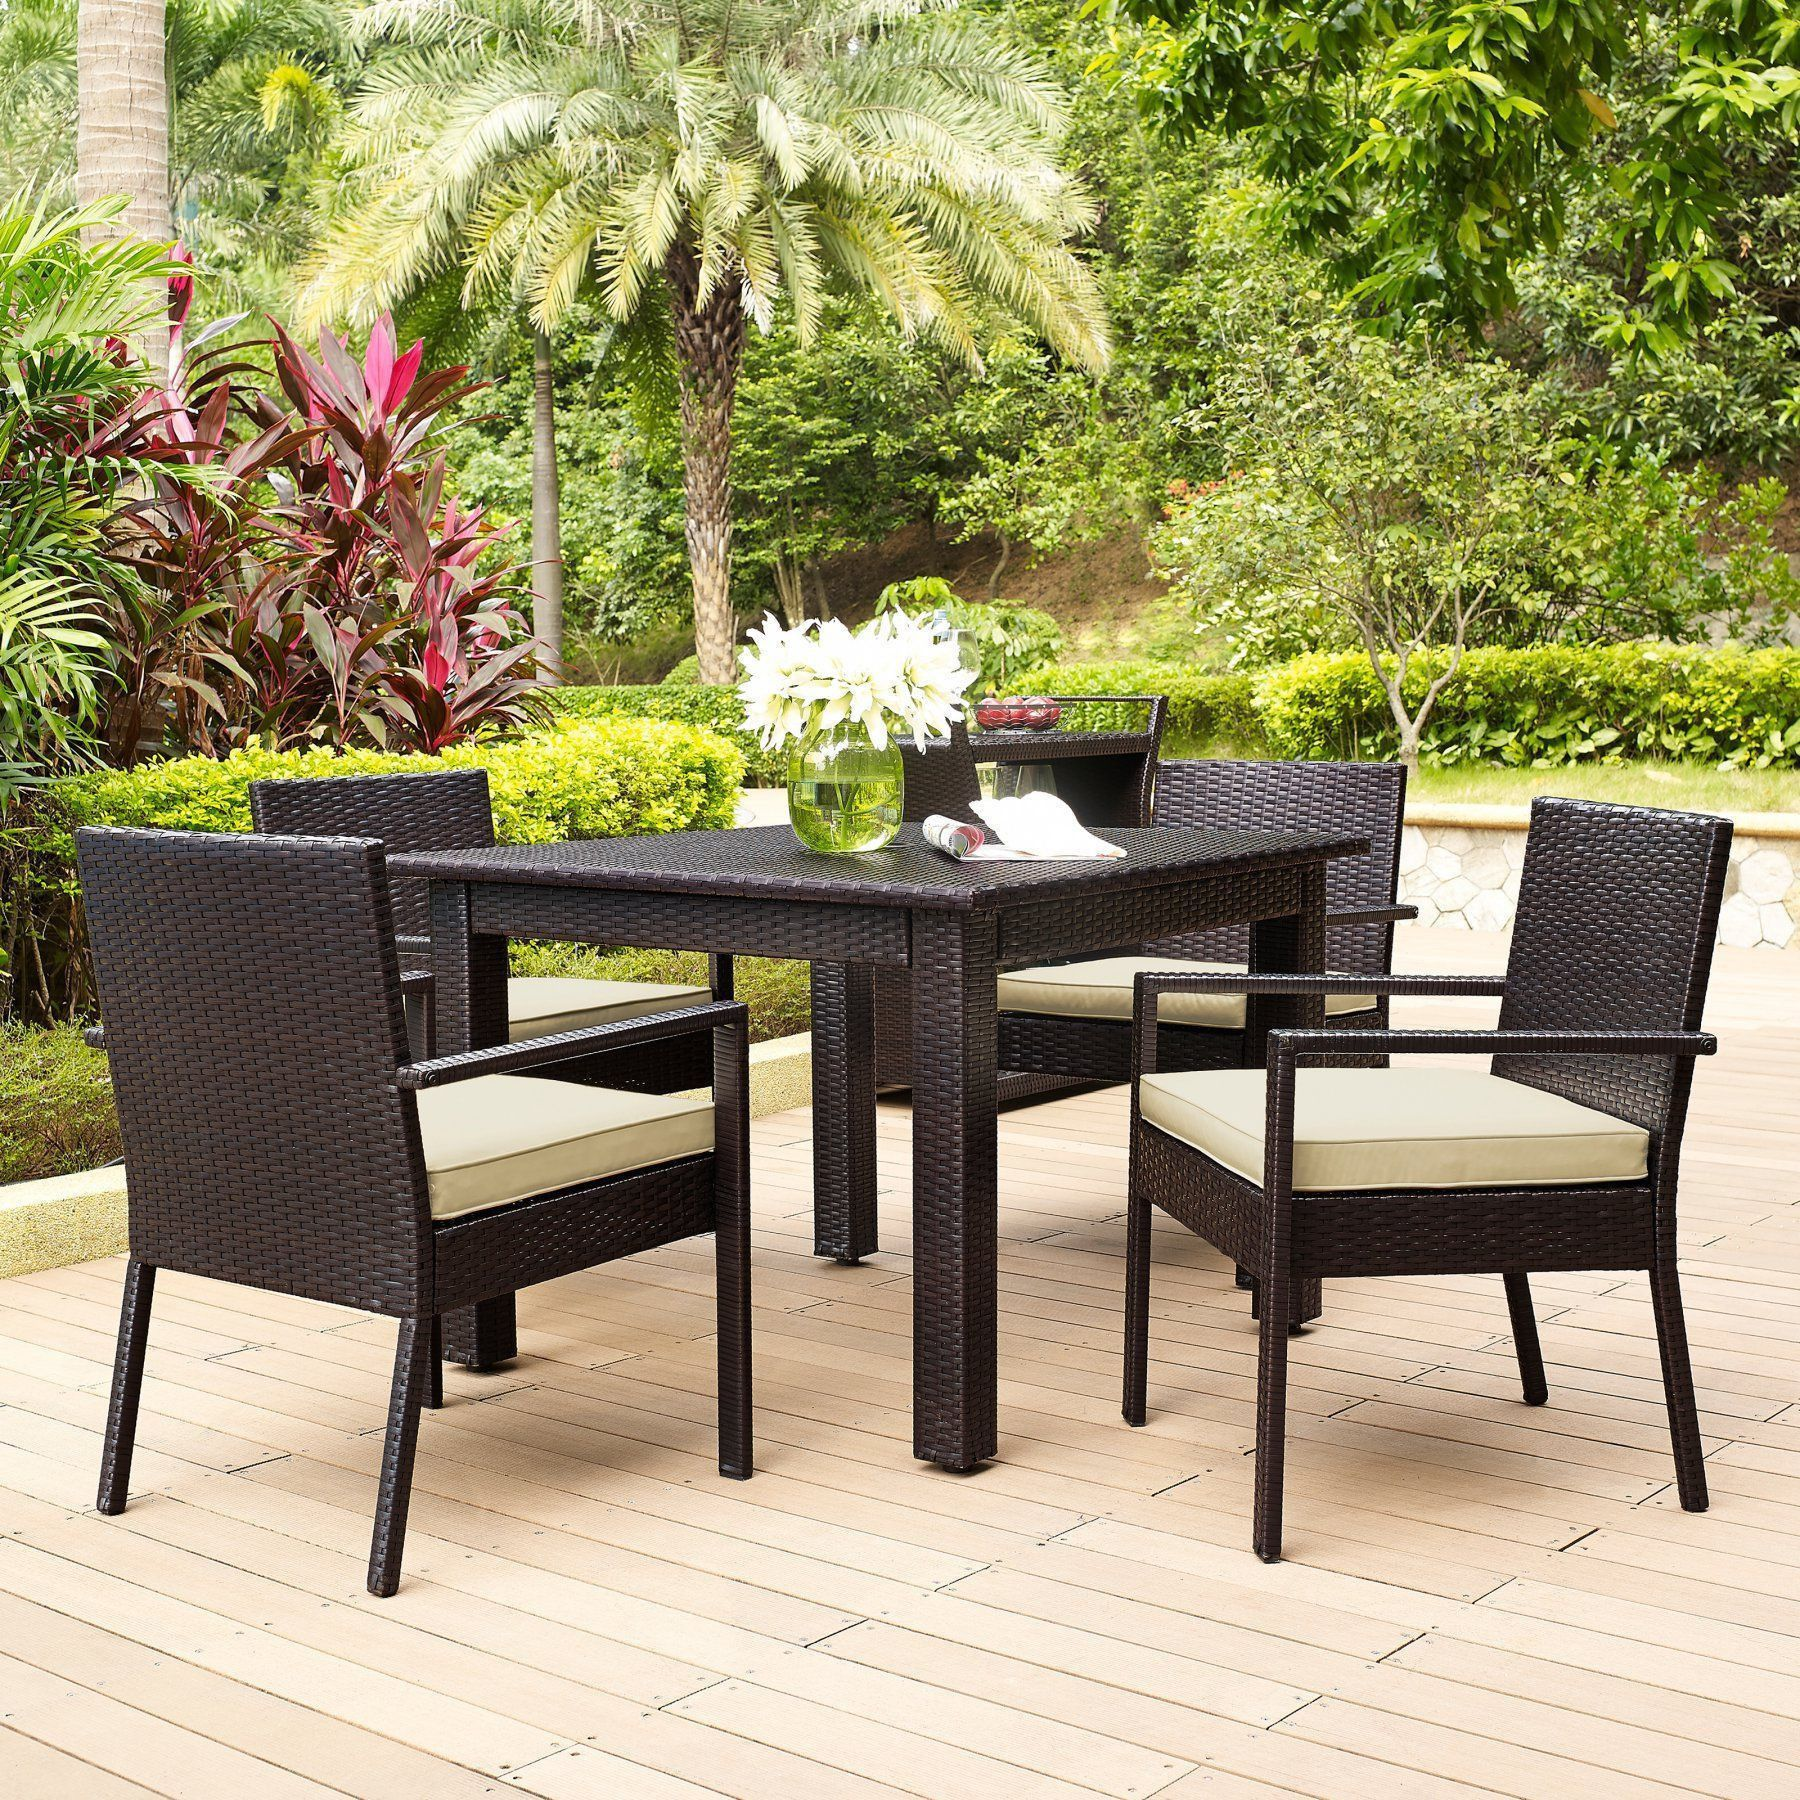 Best Patio Furniture Brands 2018 Rustic Patio Bistro Patio Set